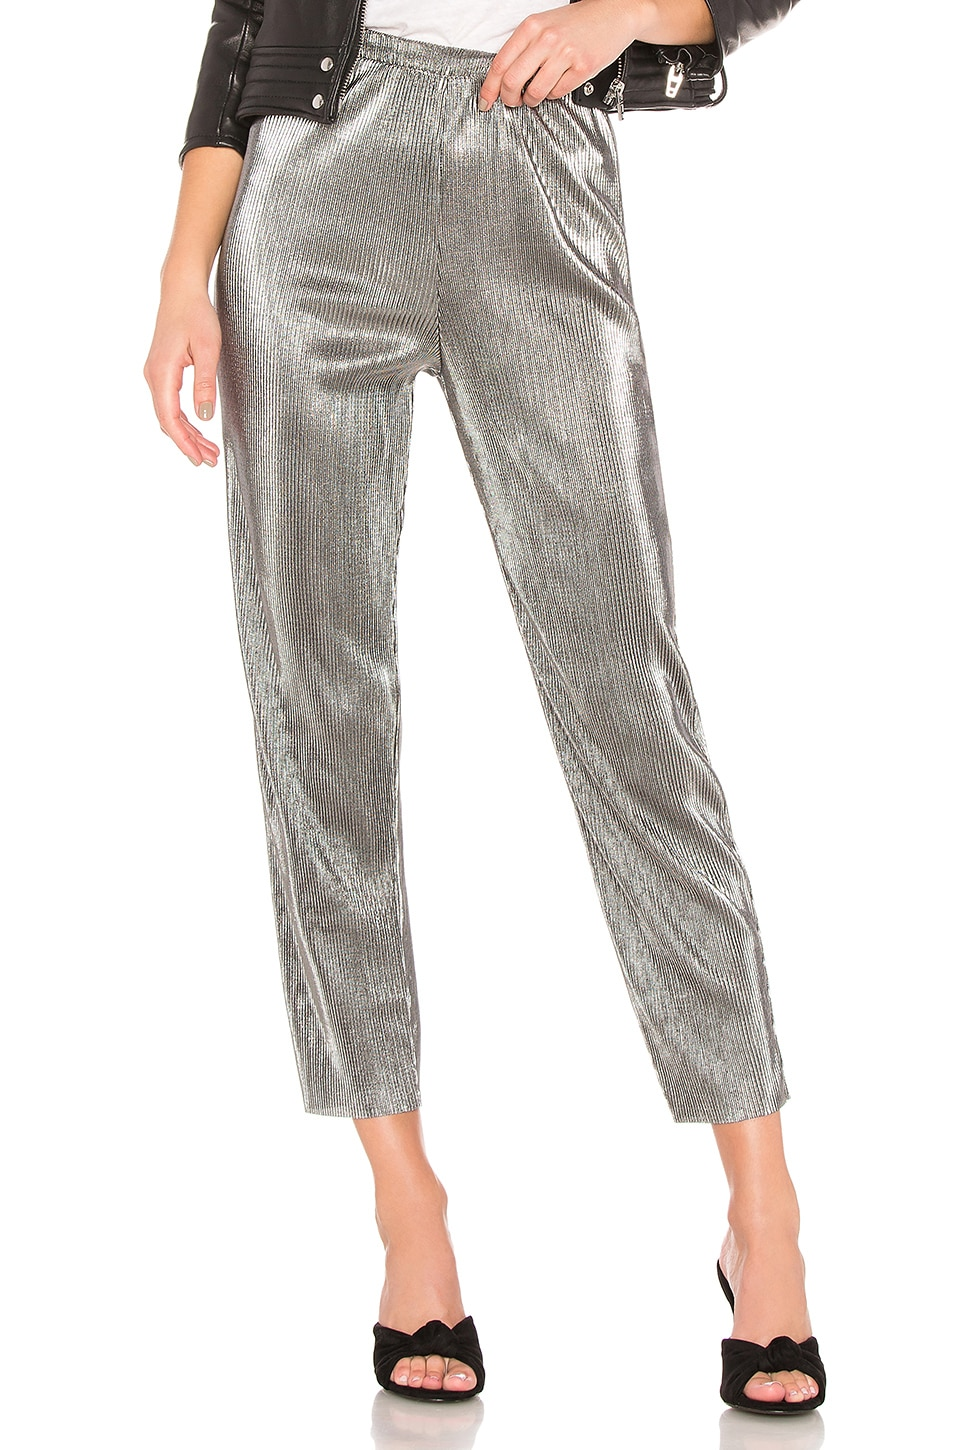 House of Harlow 1960 x REVOLVE Kate Pant in Gunmetal